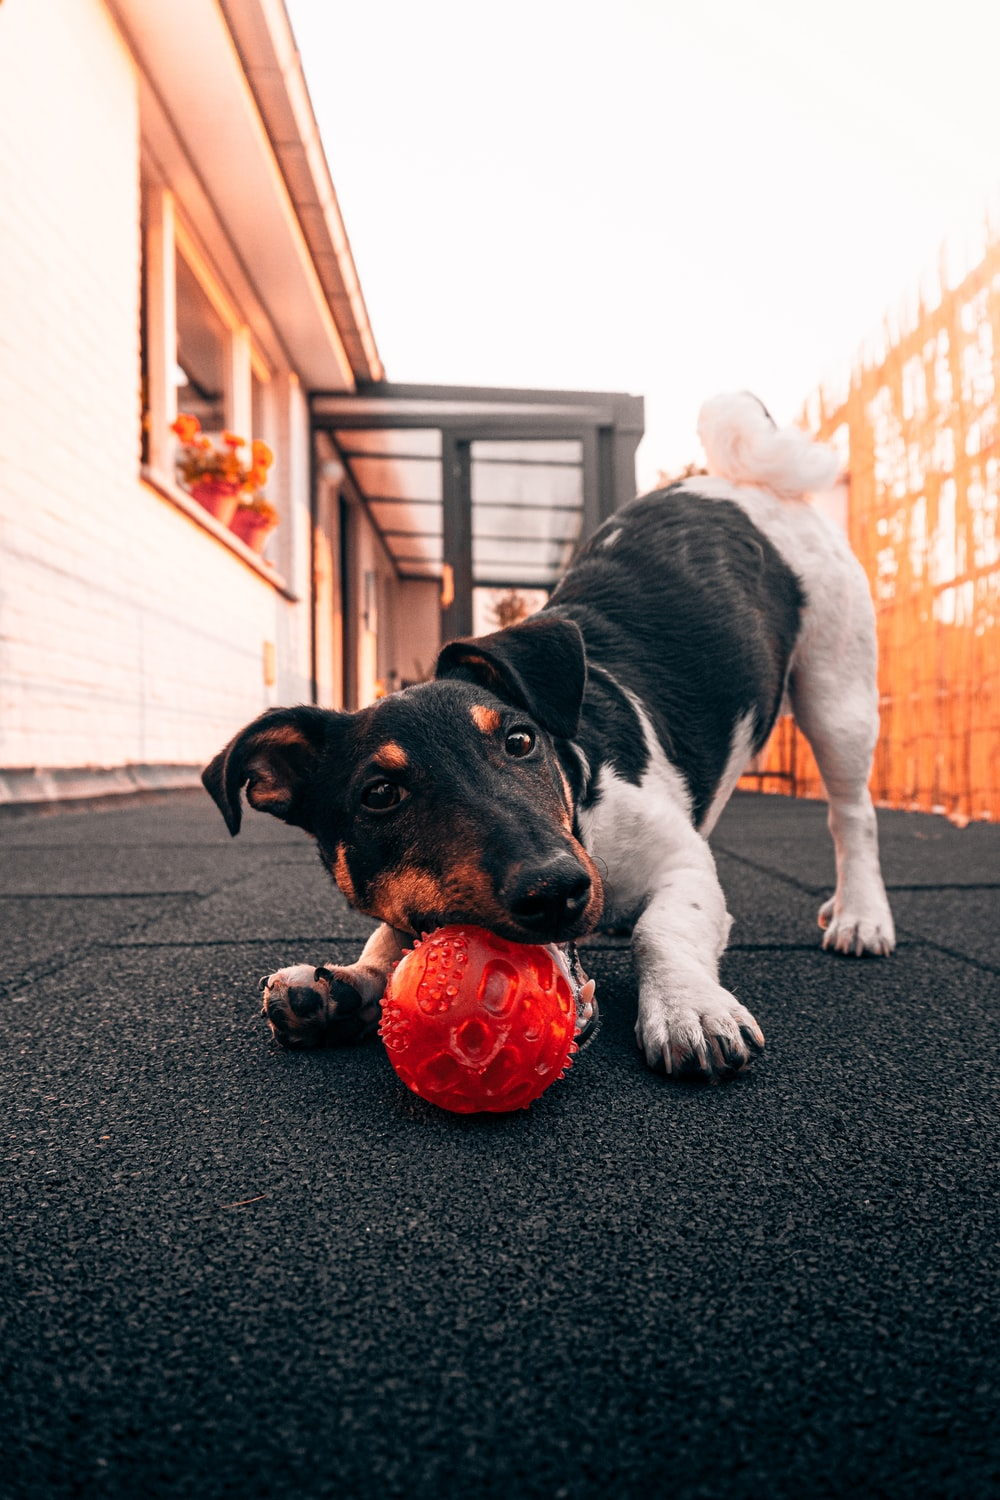 black and white short coated dog playing red ball on black carpet